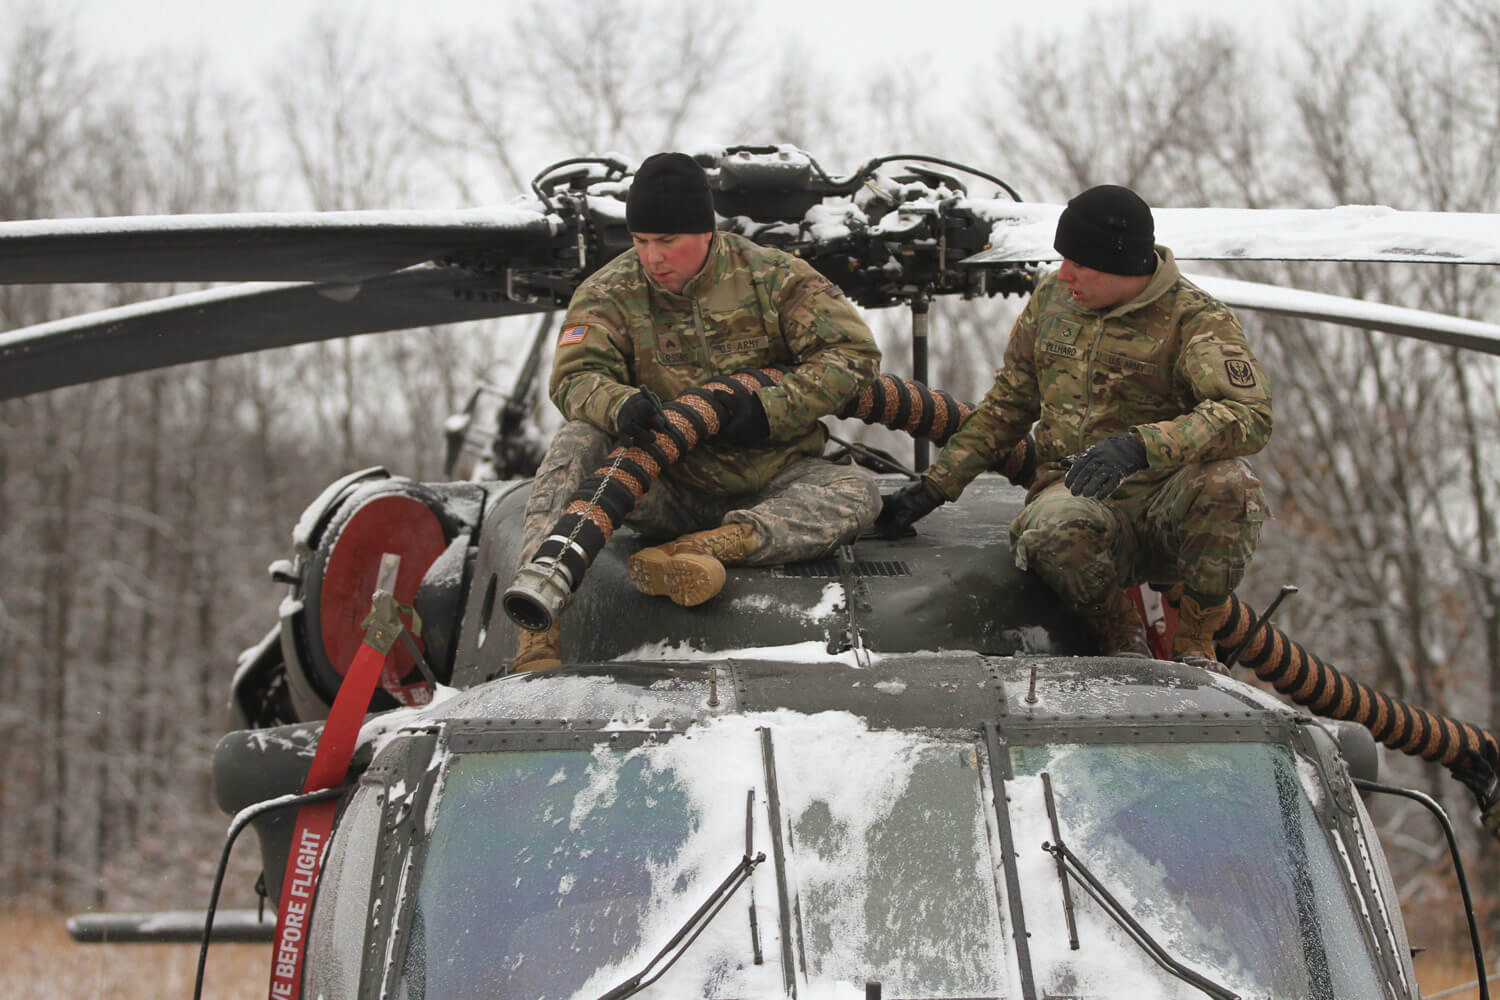 Two Missouri Army National Guard UH-60 helicopter mechanics, SGT Christopher Parsons (left) and PFC Austin Villhard from Detachment 1, Company D, 1-106th Aviation, defrost a UH-60 Black Hawk helicopter during an Annual Training exercise at Camp Clark, in Nevada, Mo. Missouri Army National Guard photo by SGT Emily Finn